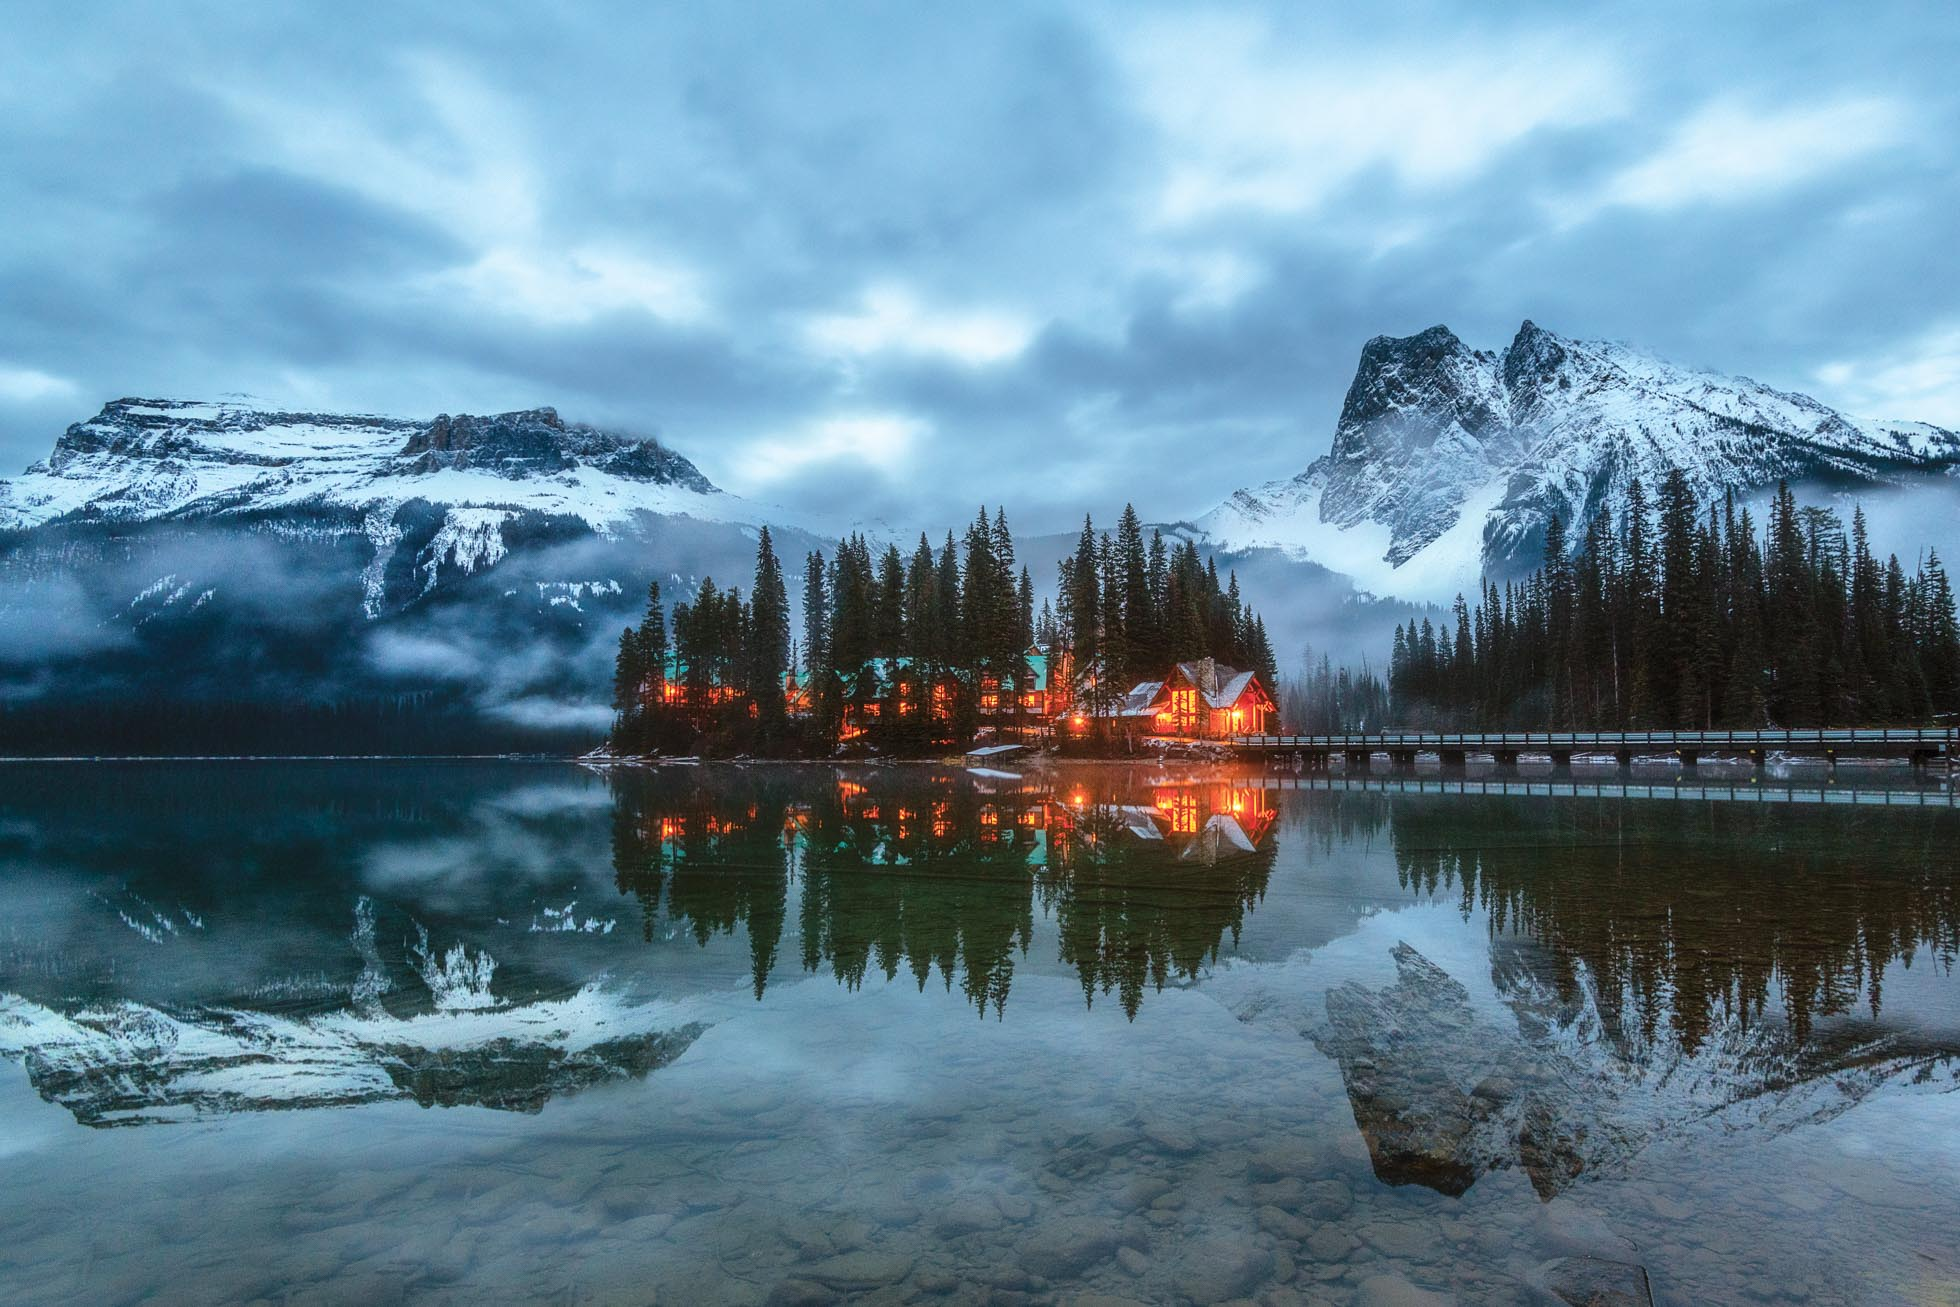 In early November, I took the opportunity to fly up to Canada for a quick weekend with my photographer friend Gina Yeo and we ventured to Emerald Lake for a wintry evening shoot. The low clouds over the lake were just magical.